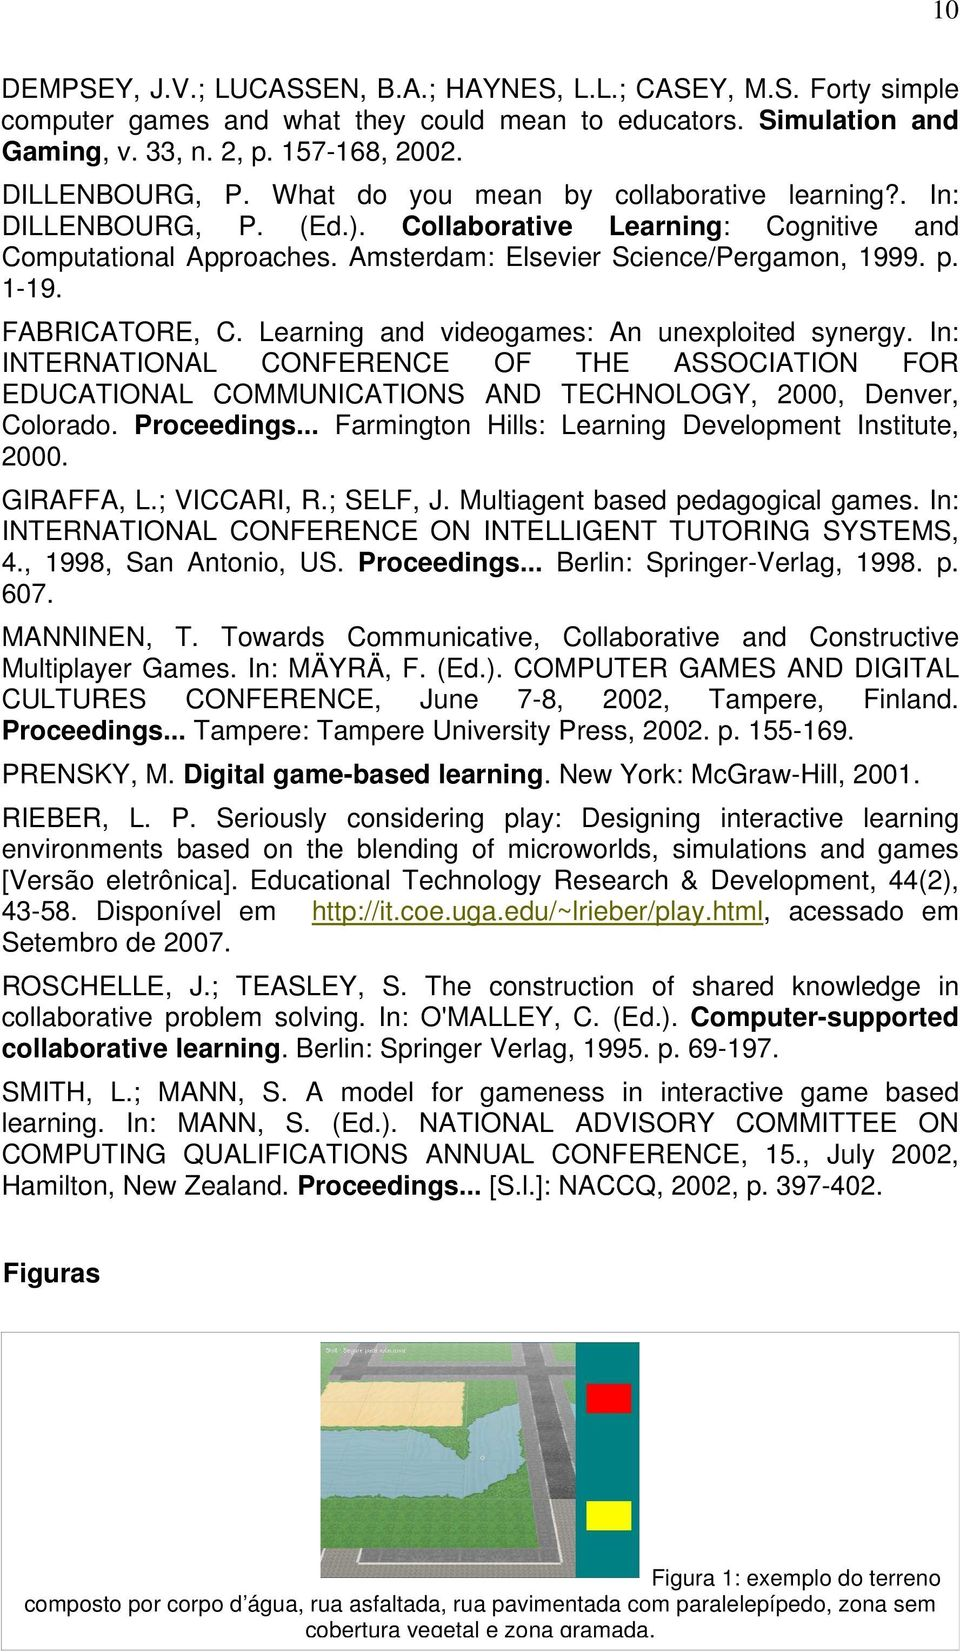 FABRICATORE, C. Learning and videogames: An unexploited synergy. In: INTERNATIONAL CONFERENCE OF THE ASSOCIATION FOR EDUCATIONAL COMMUNICATIONS AND TECHNOLOGY, 2000, Denver, Colorado. Proceedings.